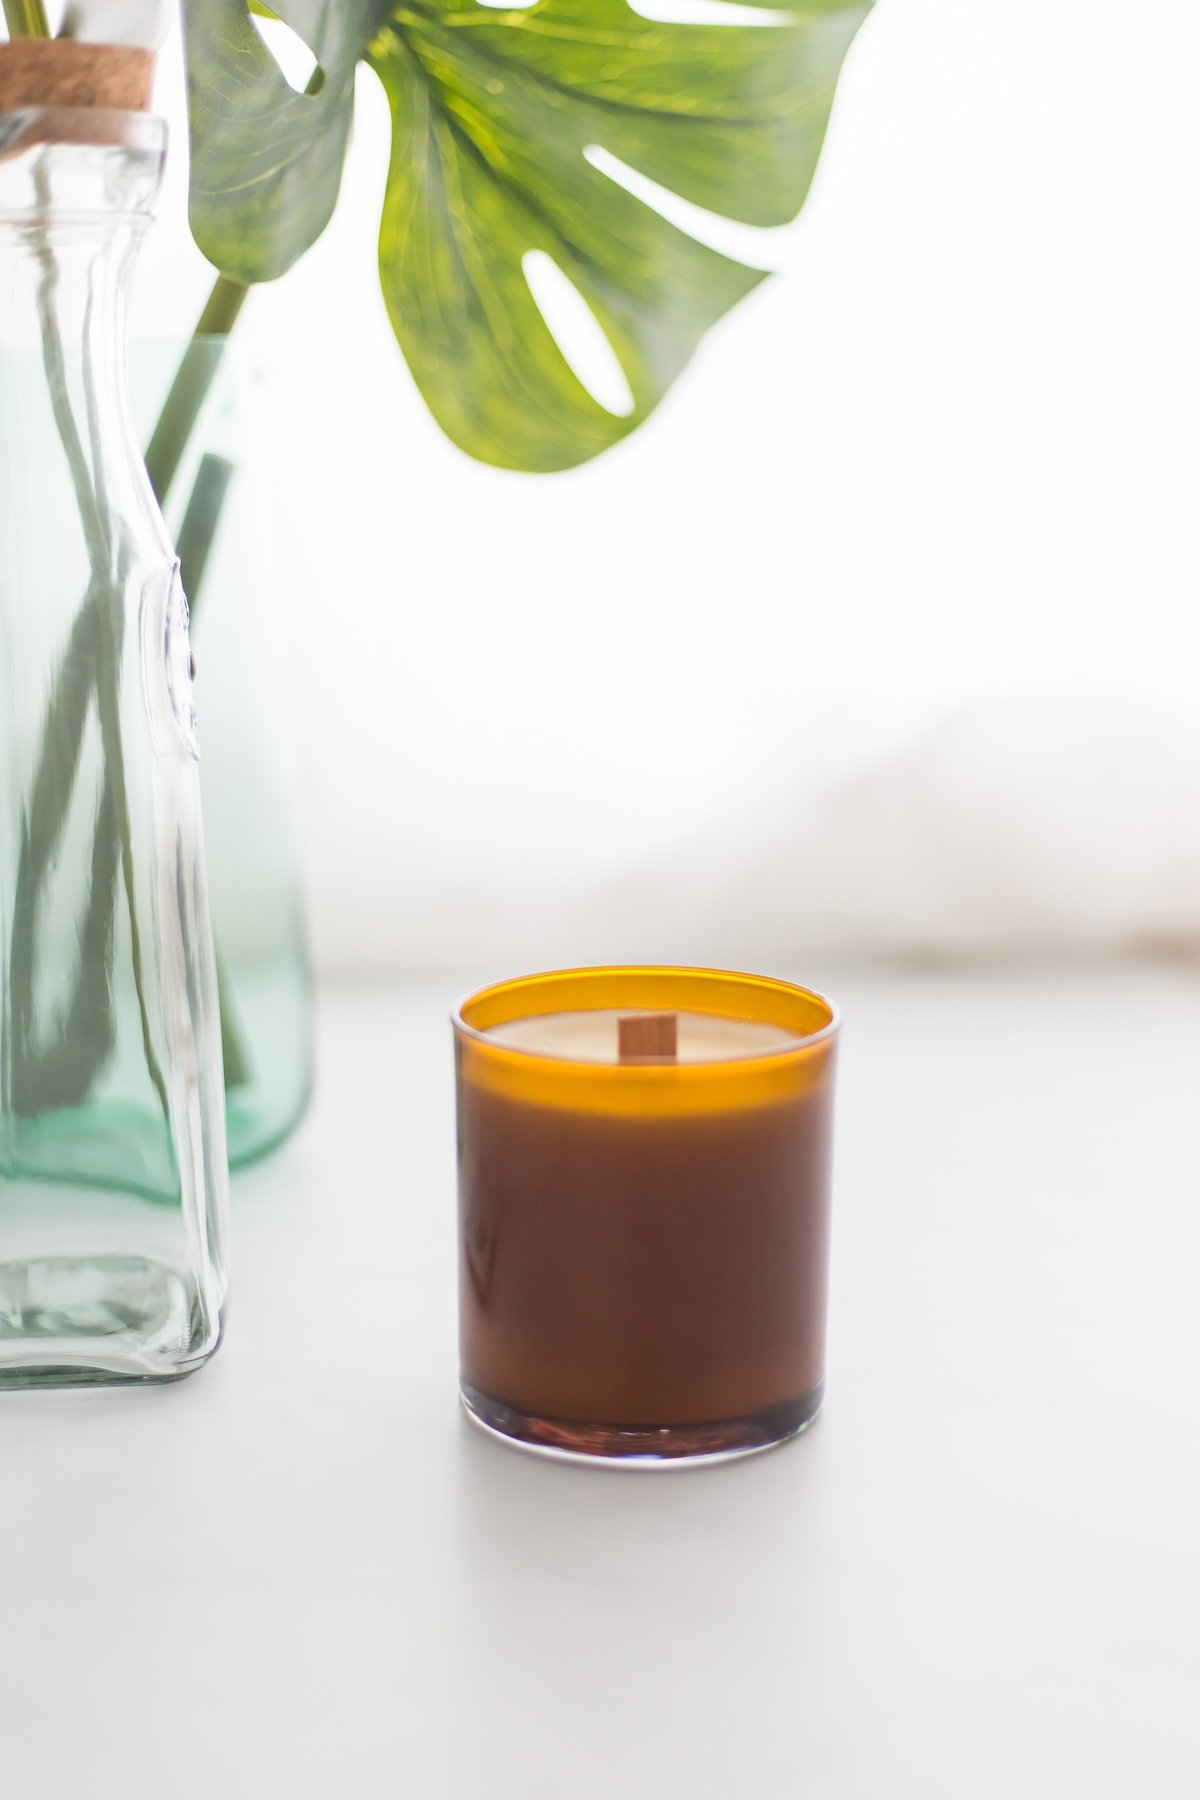 Atelier21 Co - Vintage Candle-007